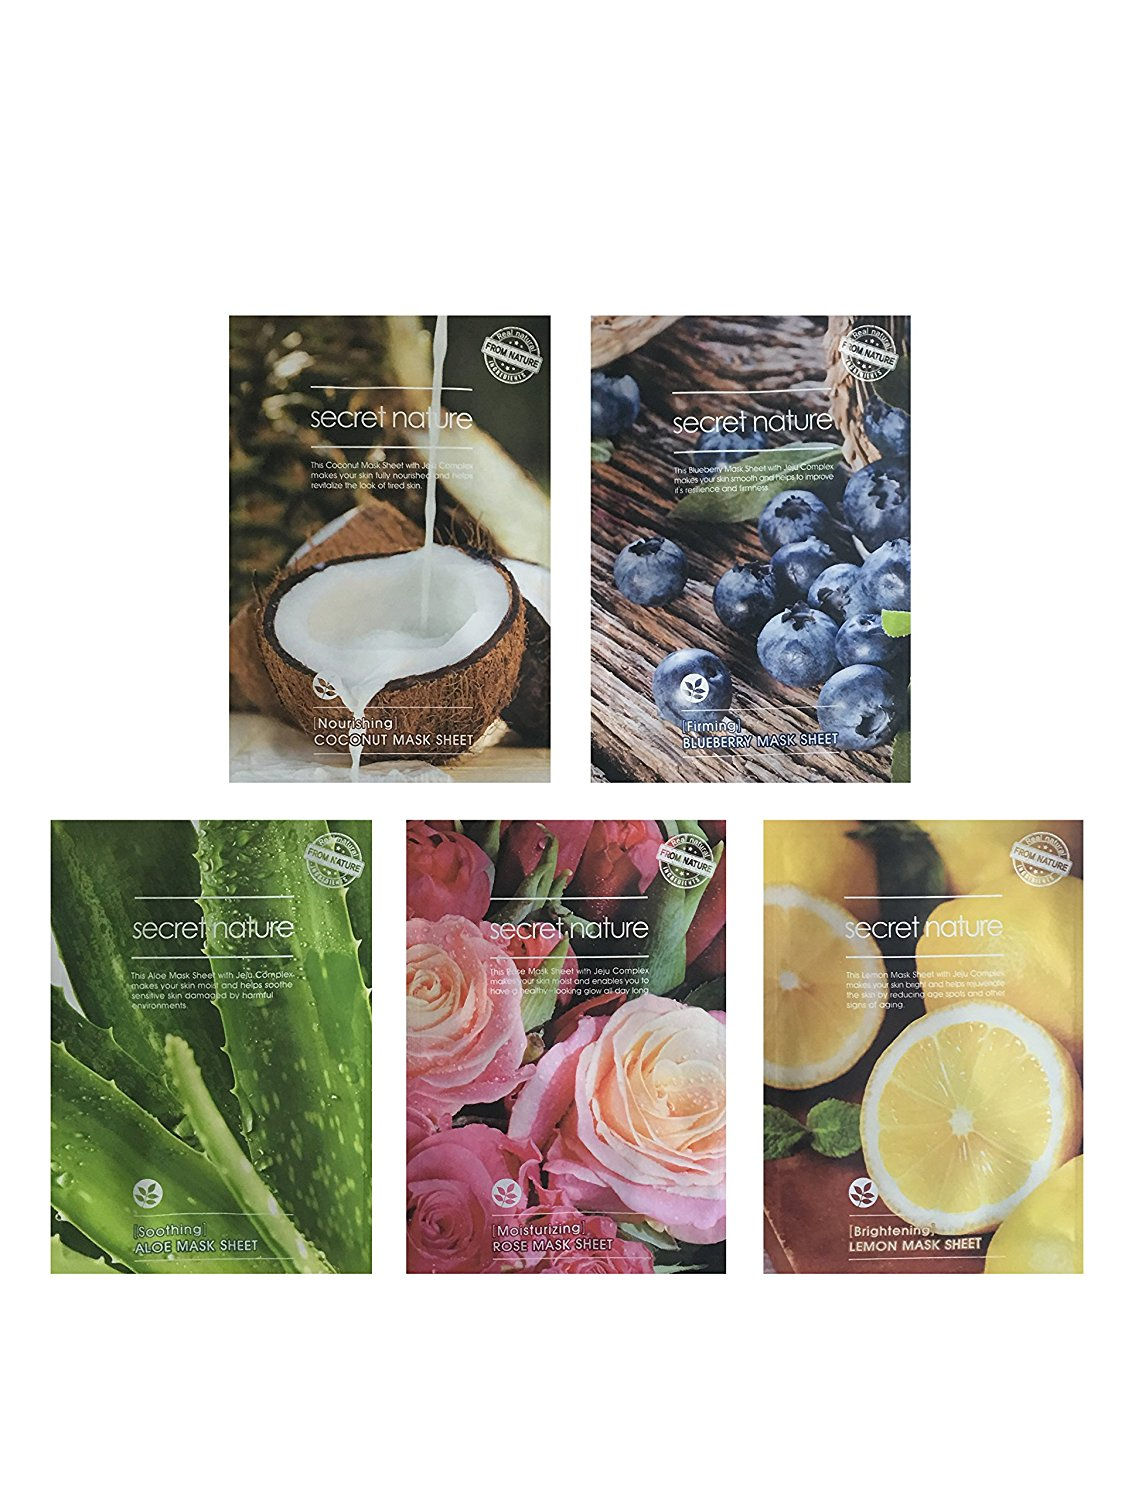 Revitalizing Variety Facial Mask Sheet 10 Pack by Secret Nature - 2x Aloe for Soothing / 2x Lemon for Brightening / 2x Rose for Moisturizing / 2x Blueberry for Firming / 2x Coconut for Nourishing